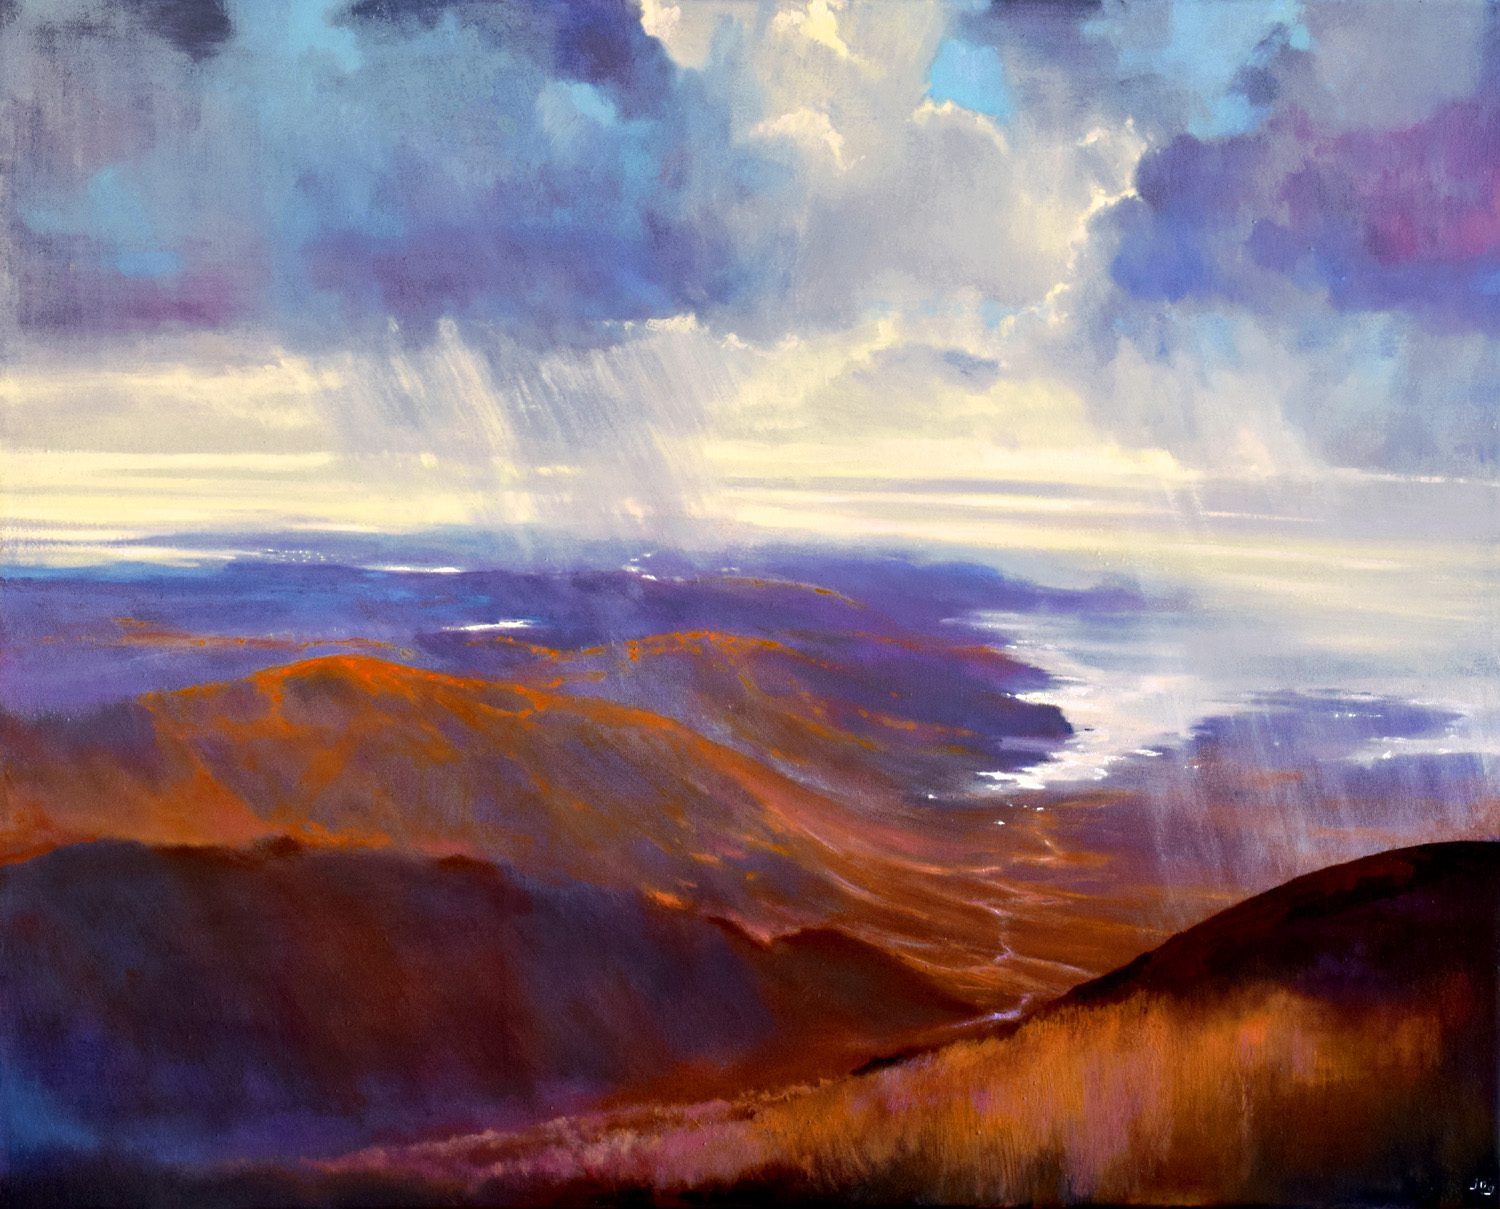 As Far as The Eye Can See V by John O'Grady | A scenic landscape painting of the West of Ireland on a changing weather day